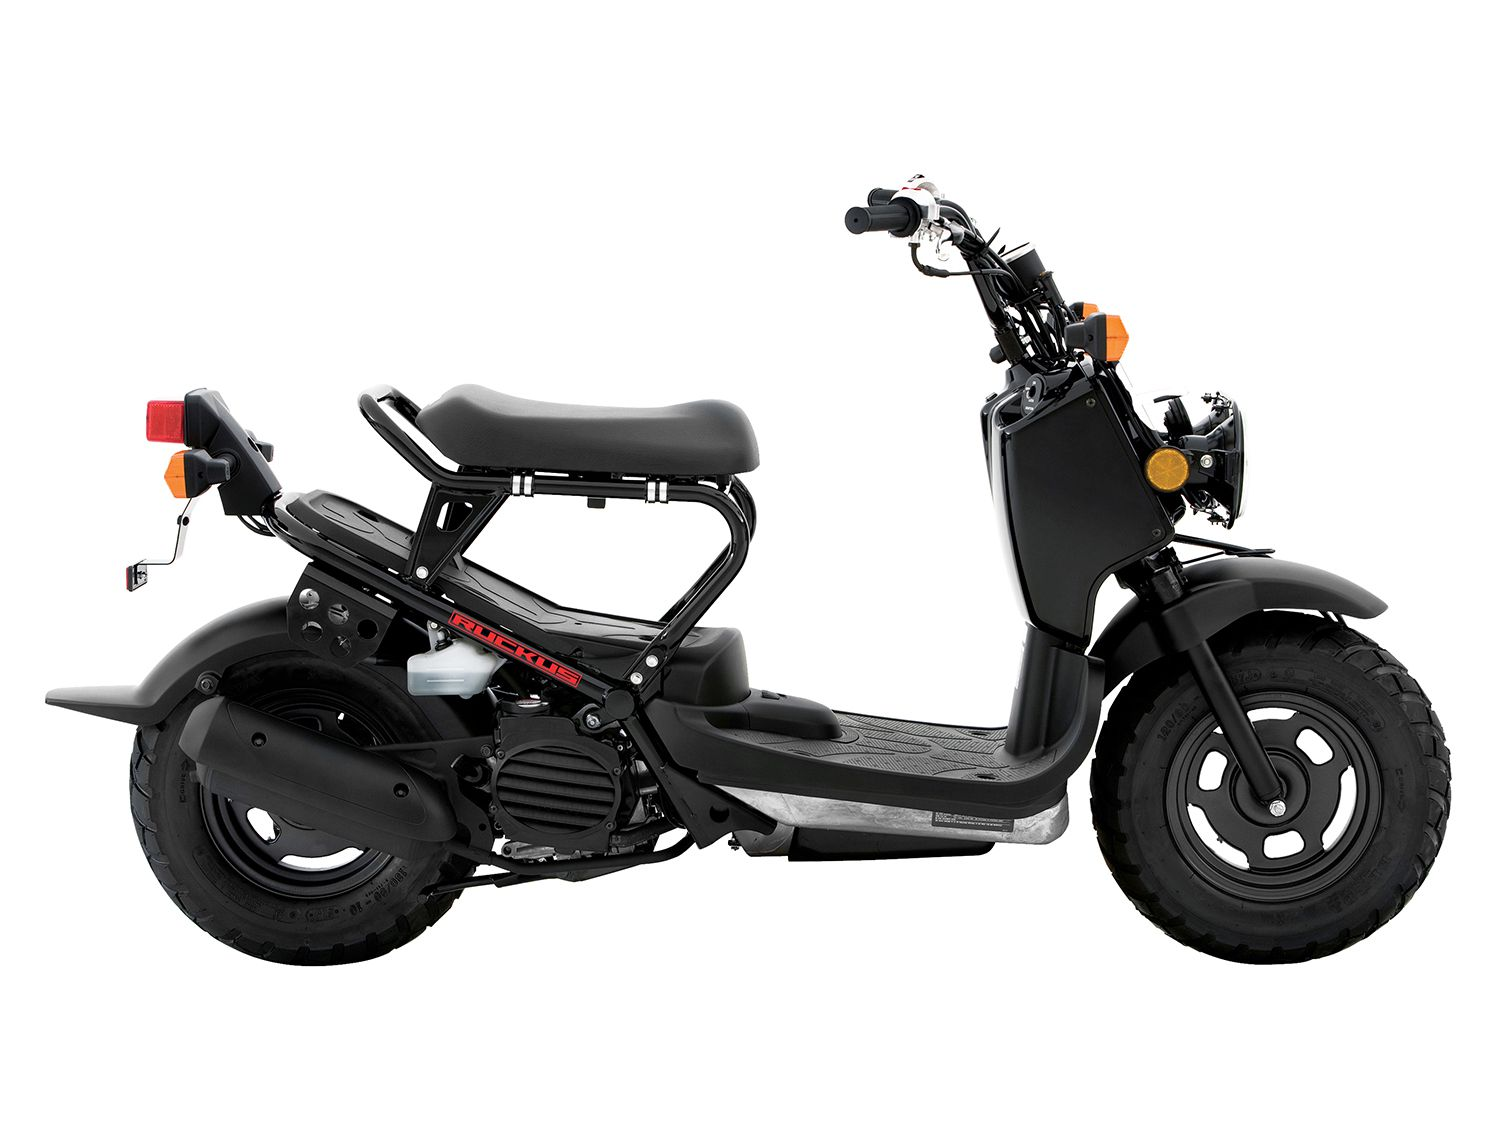 The Honda Ruckus will be available in February.